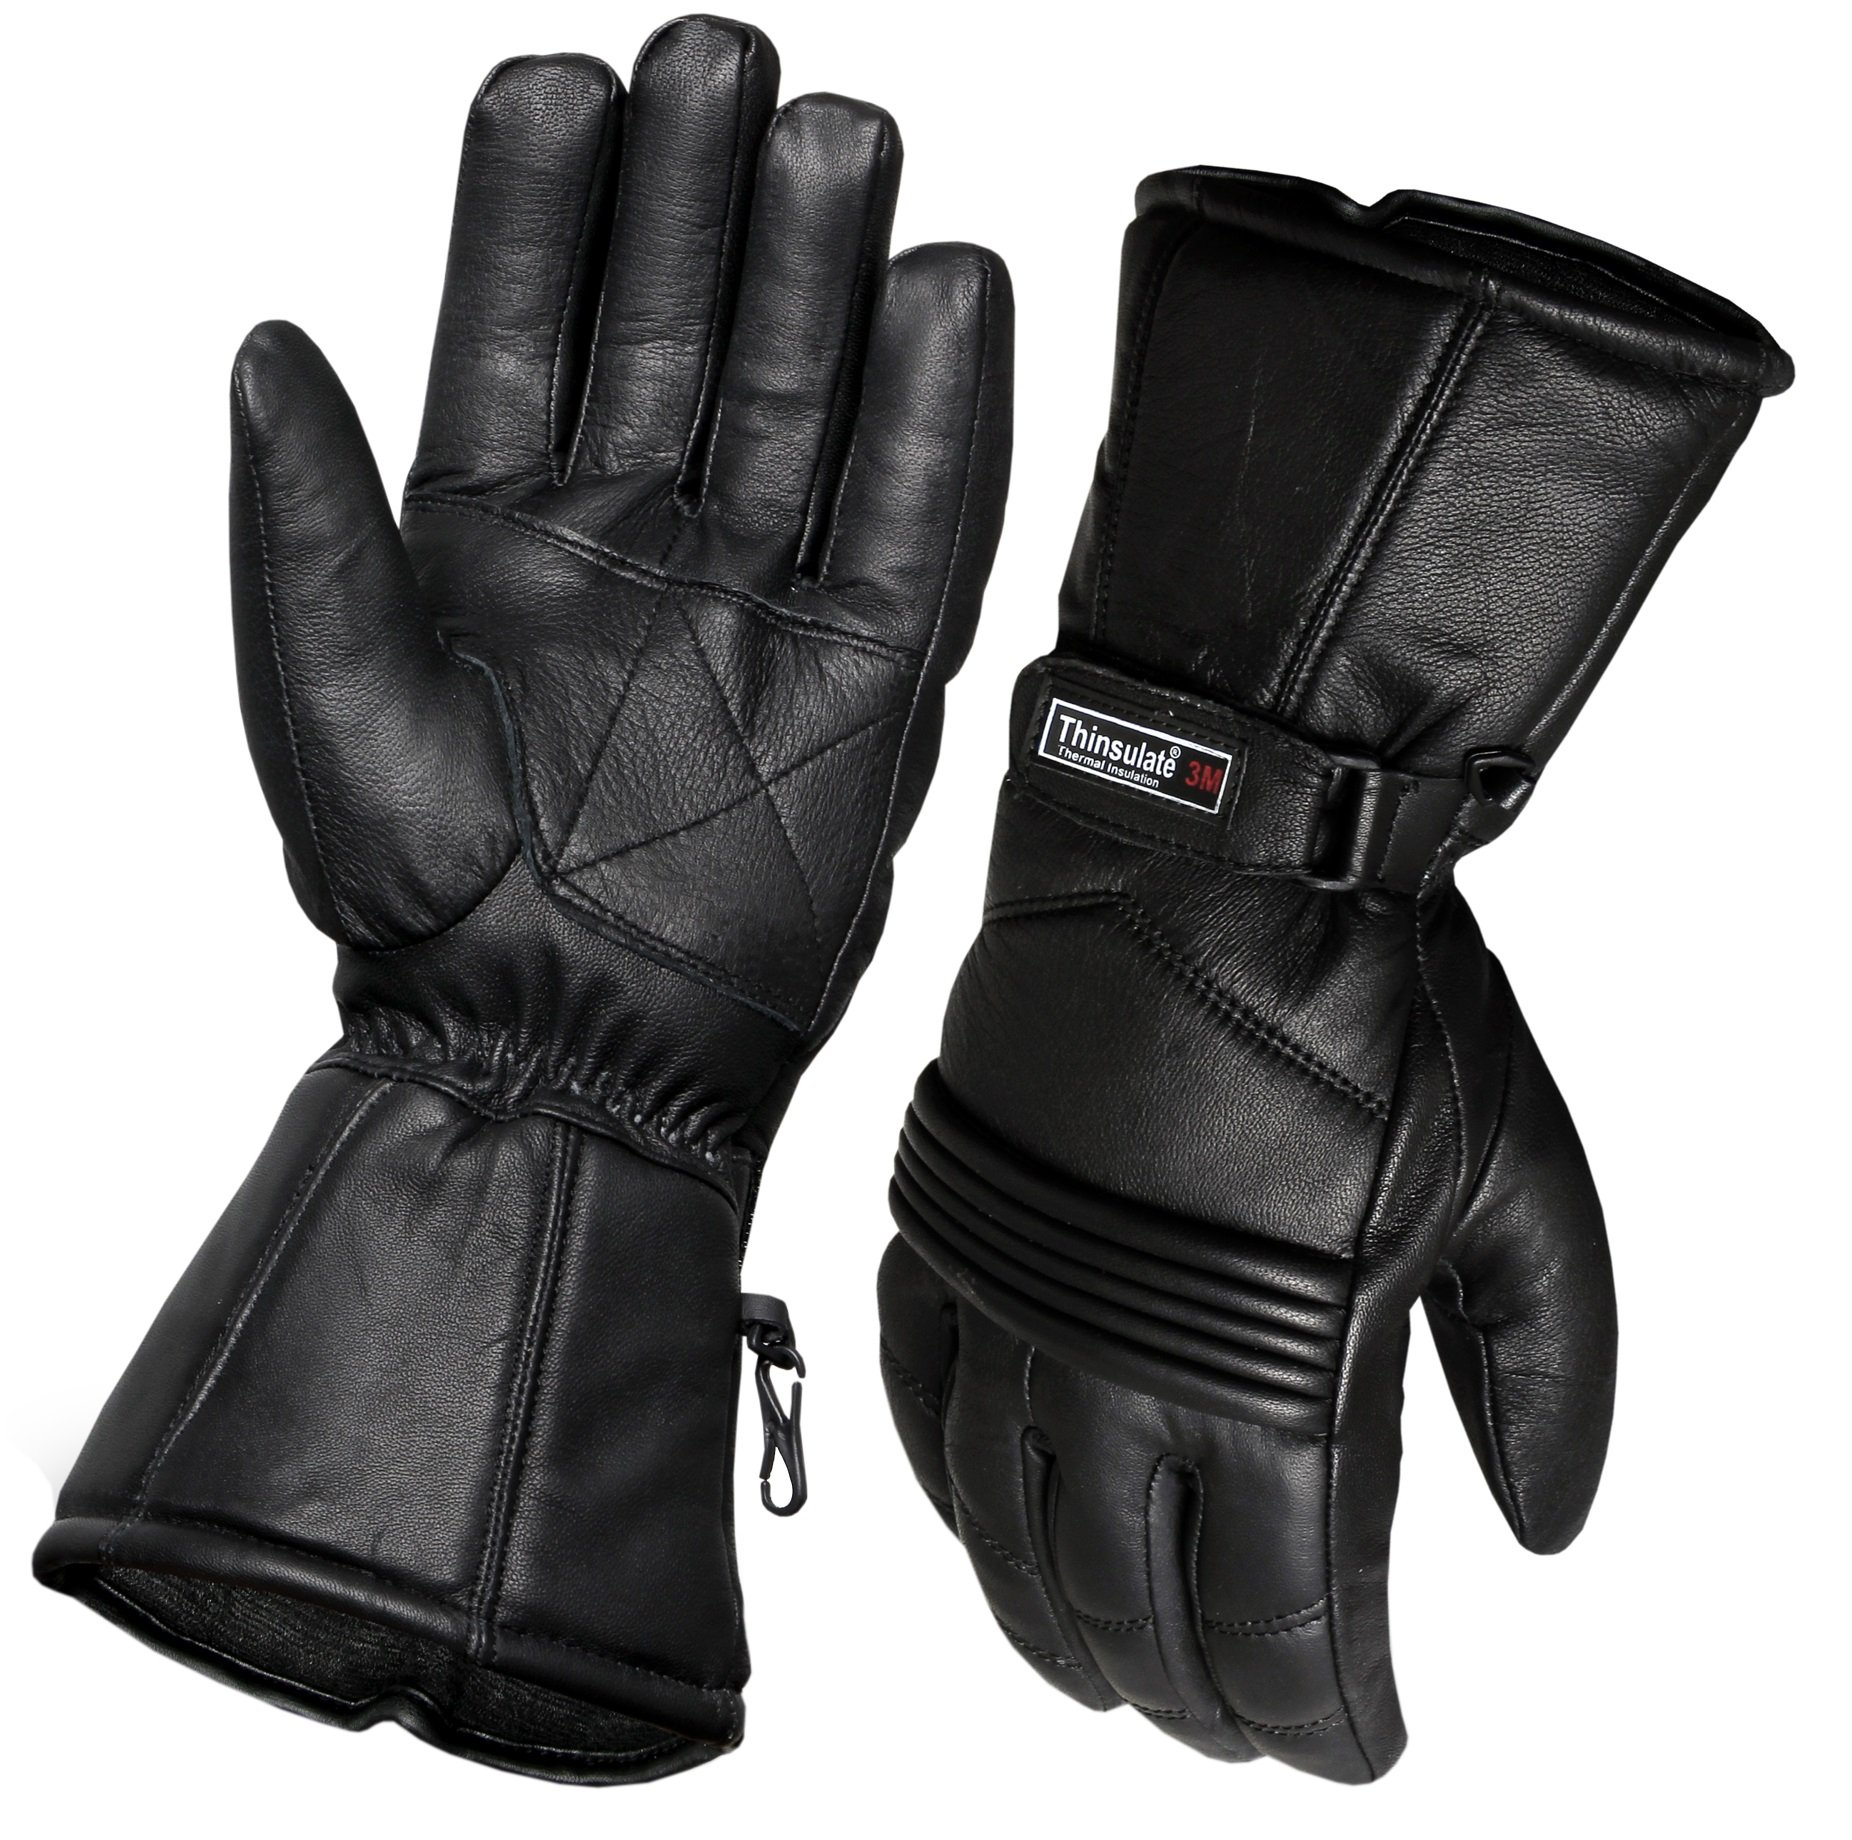 Thermal Motorbike Motorcycle Leather Gloves Waterproof Protection Winter Summer (S)